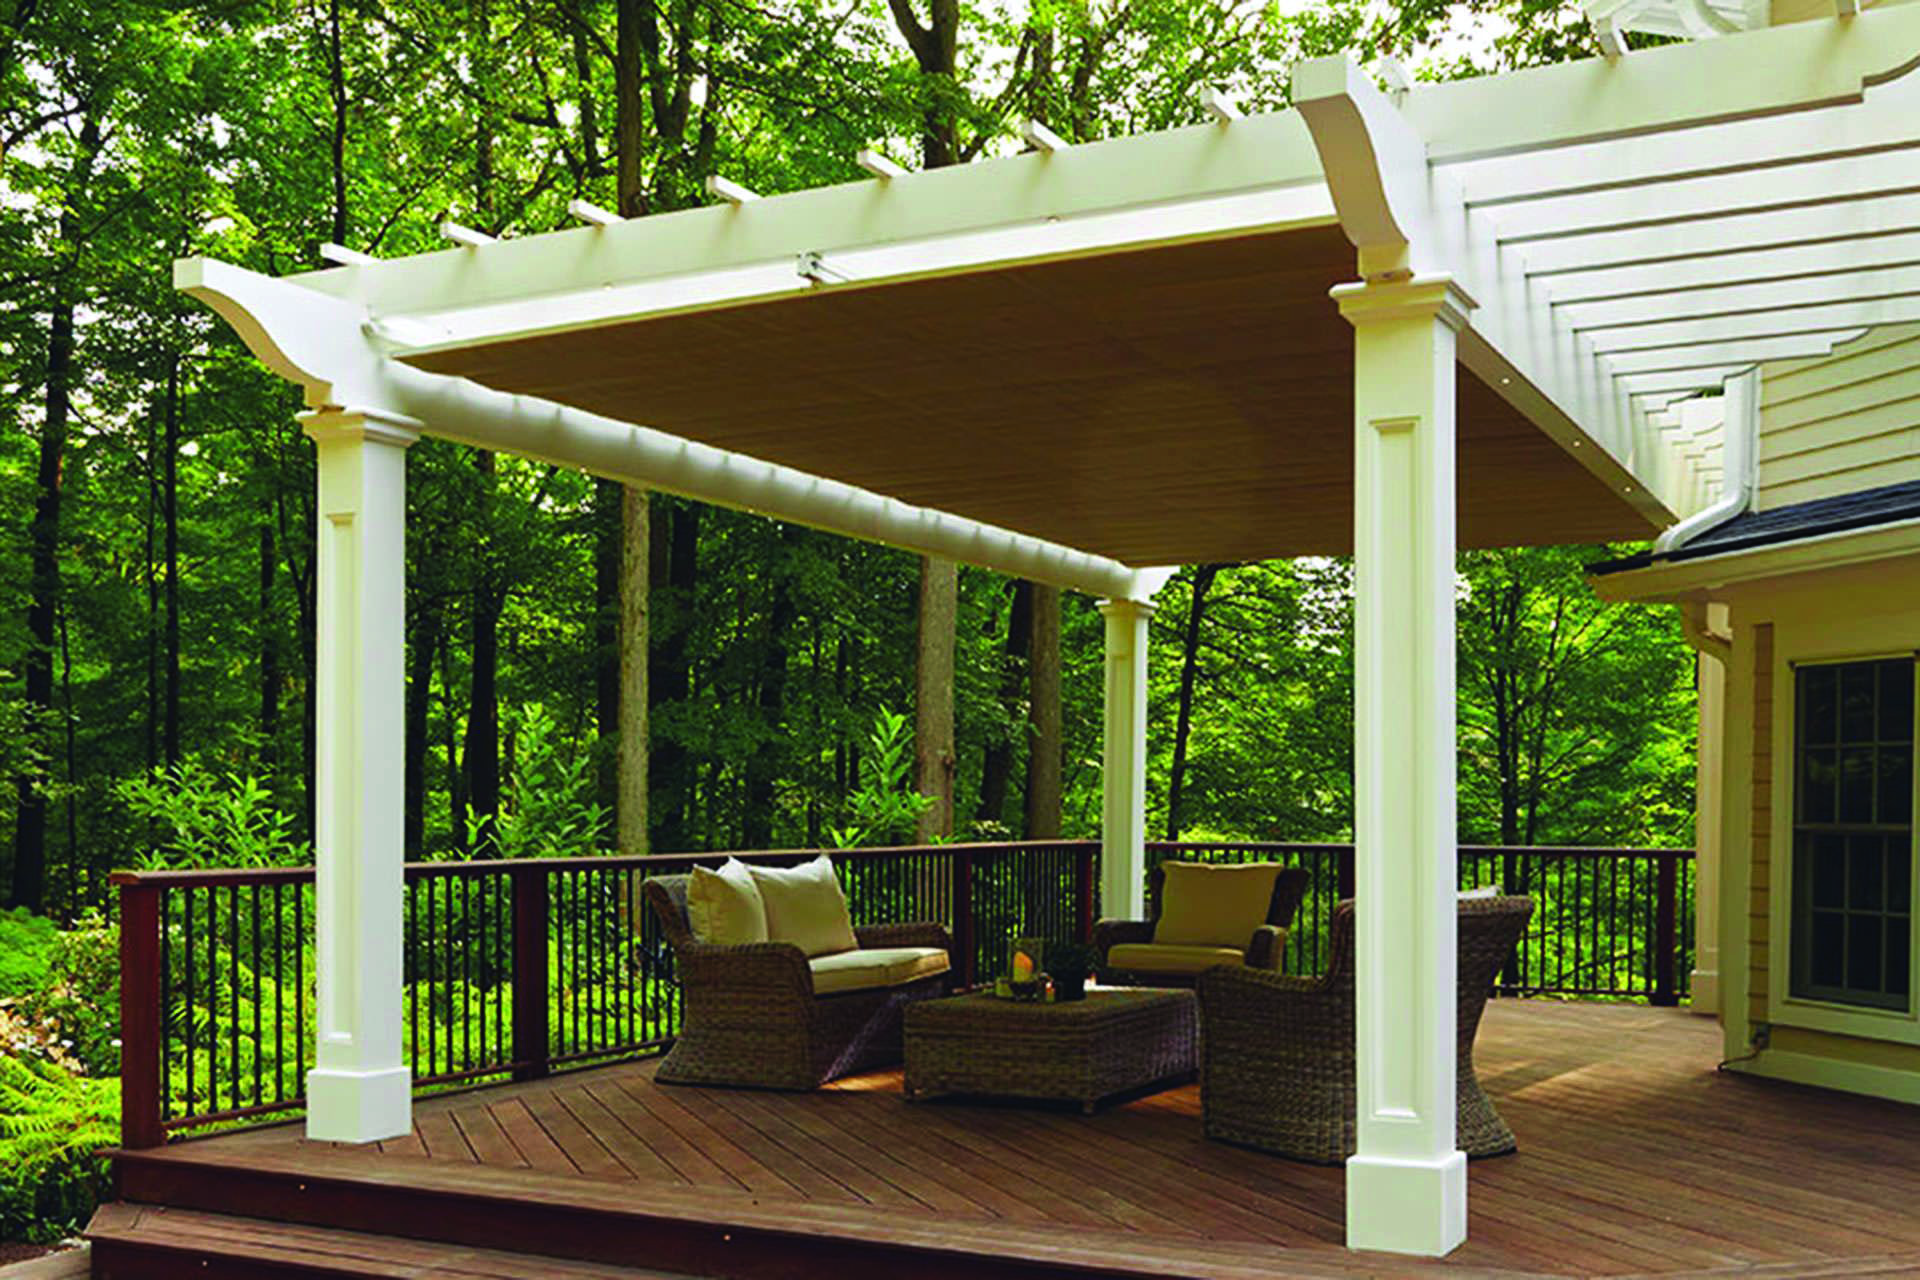 Pergola Canopy And Pergola Covers Patio Shade Options And Ideas With Images Retractable Pergola Canopy Pergola Canopy Pergola